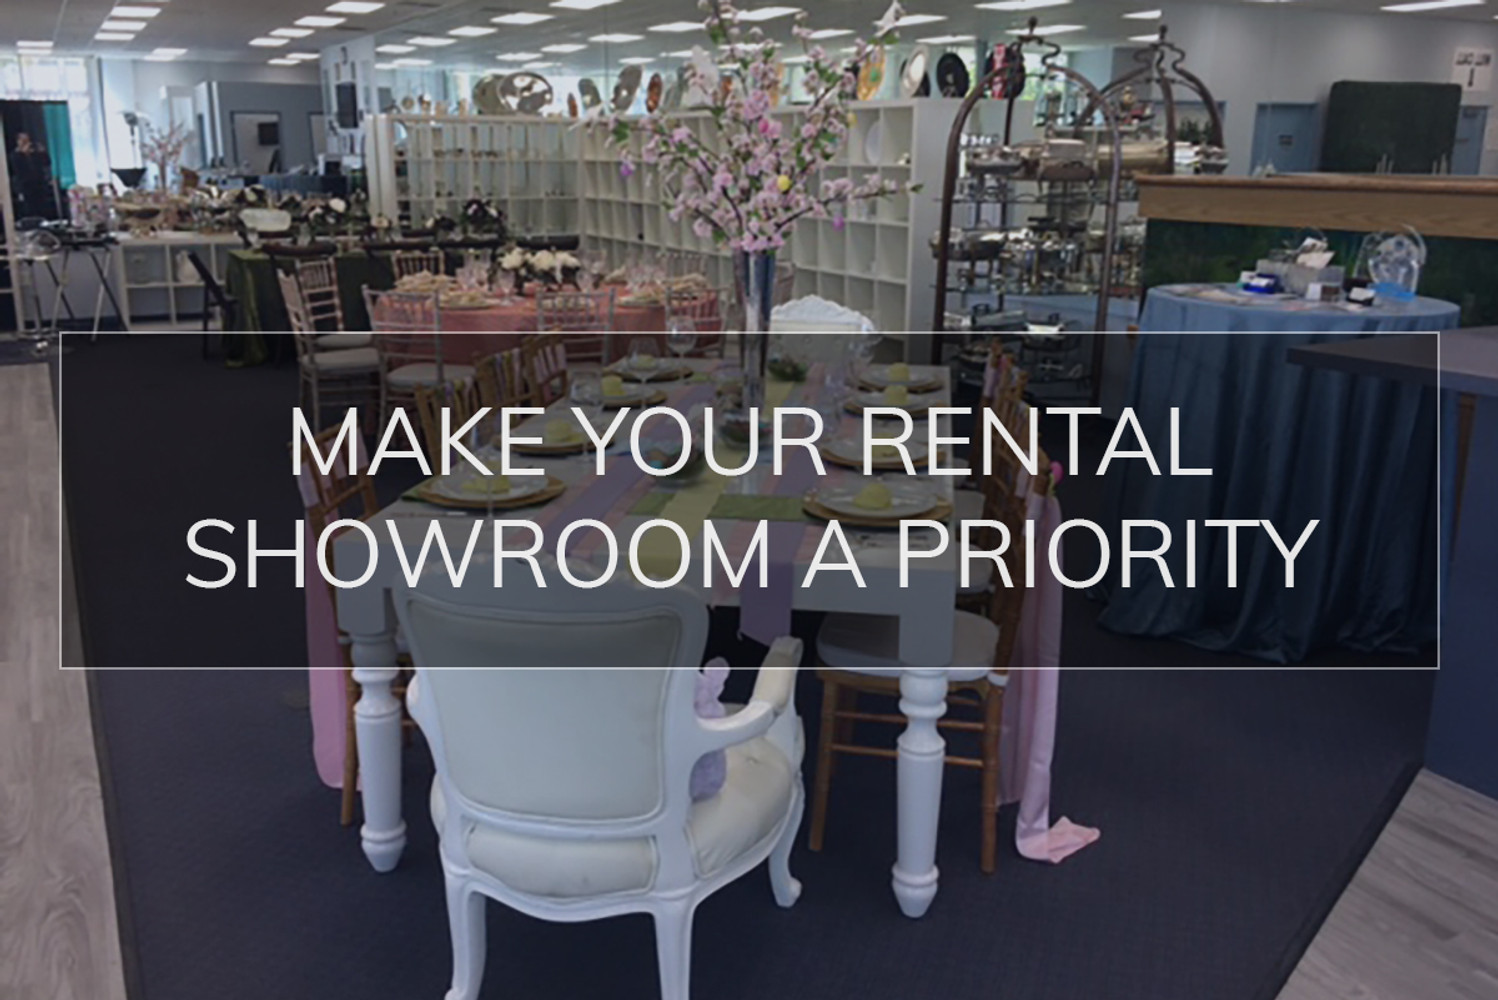 Make Your Rental Showroom a Priority